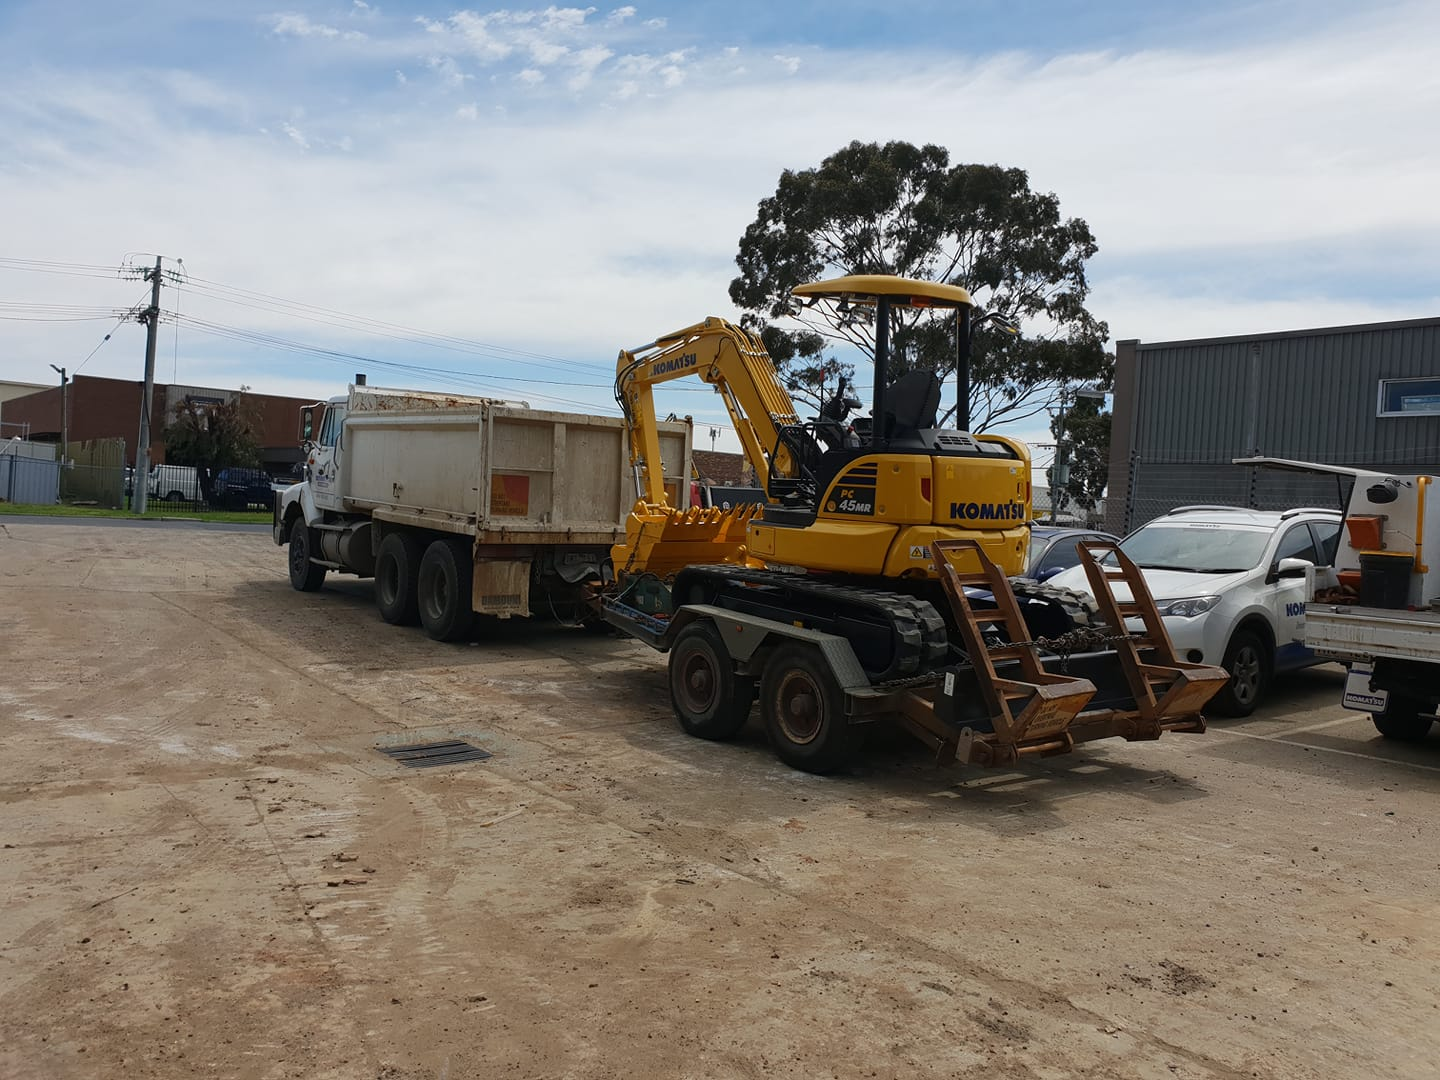 Hire Combo - 5T Excavator and 10m3 Tandem Tipper Truck